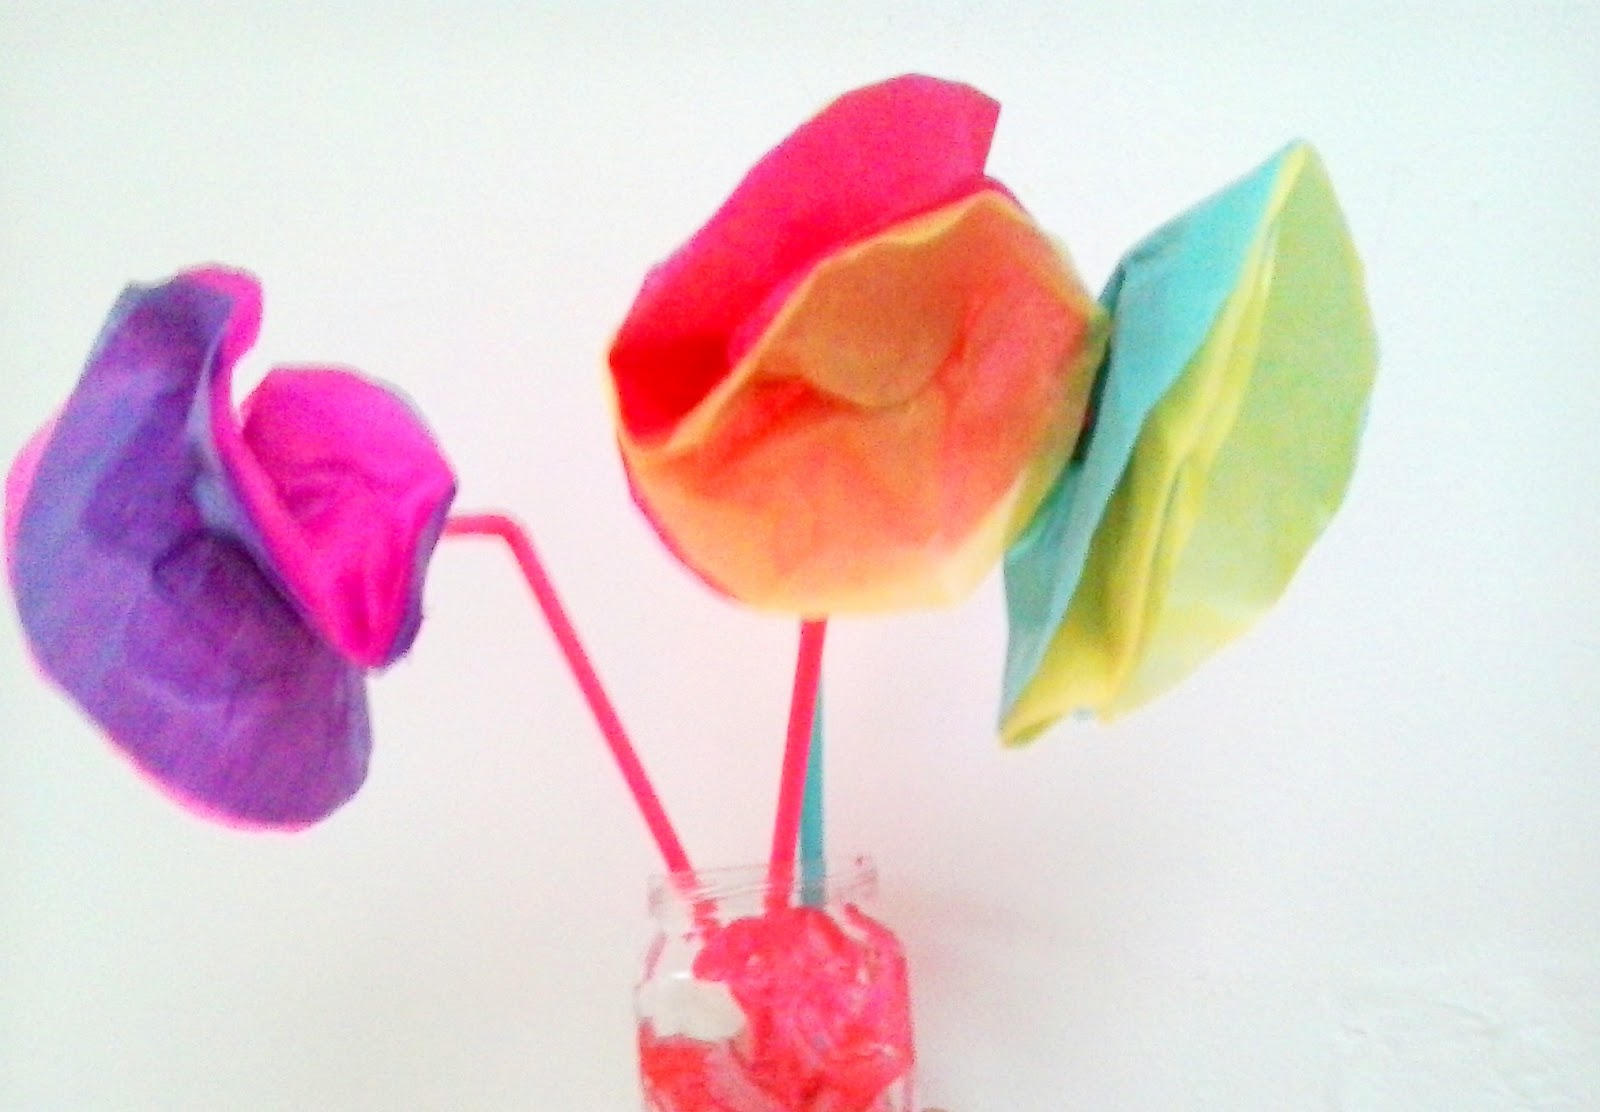 Kids craft tissue paper flowers get crafty why not brighten up someones day by handcrafting some cheap cheerful tissue paper flowers with the kids these colourful flowers are easy enough to make mightylinksfo